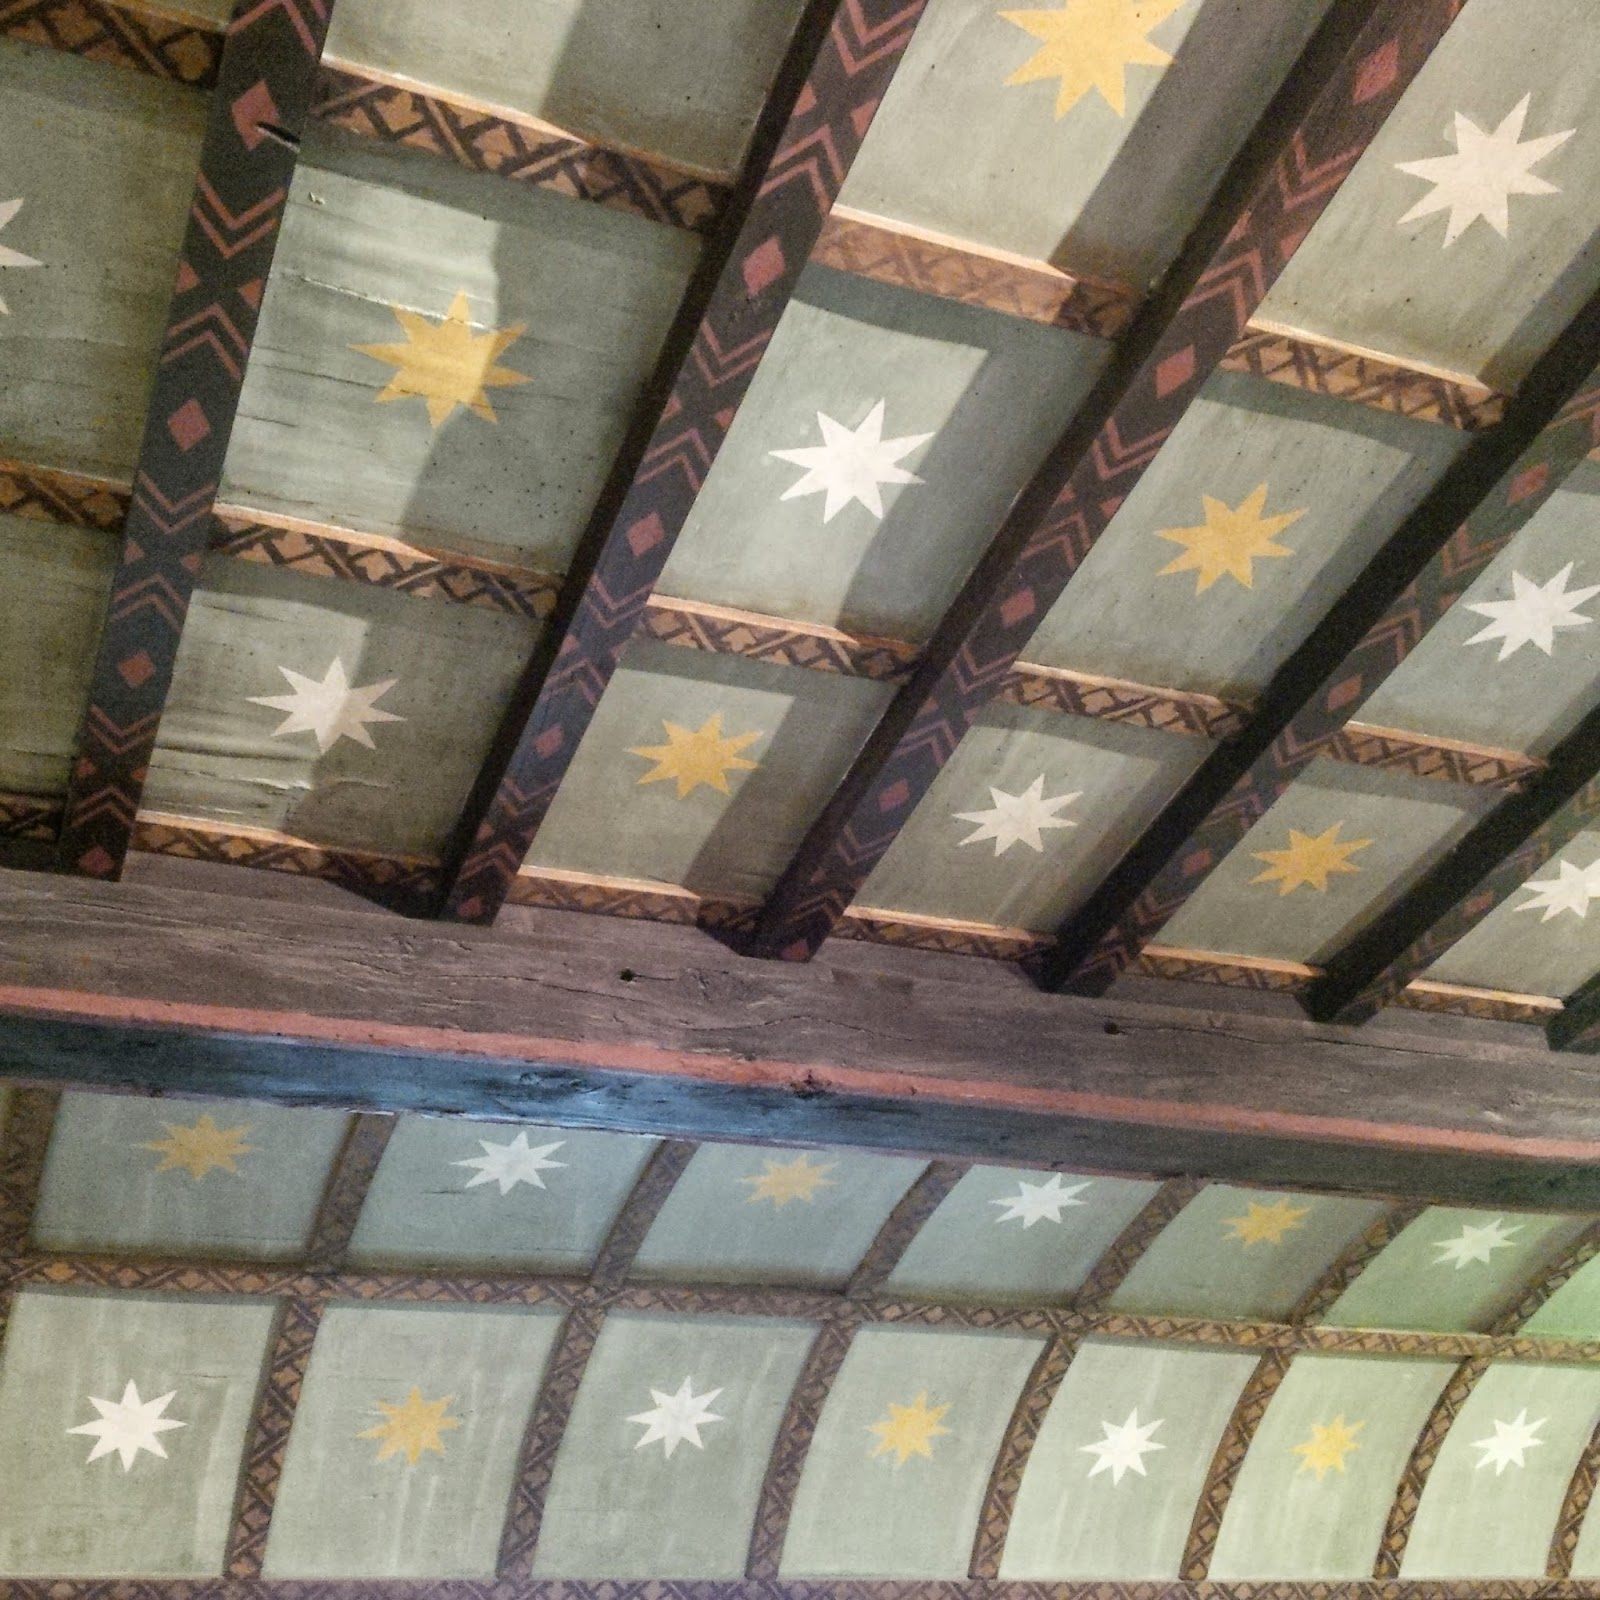 The painted ceiling in the attic rooms in Juliet's House in Verona